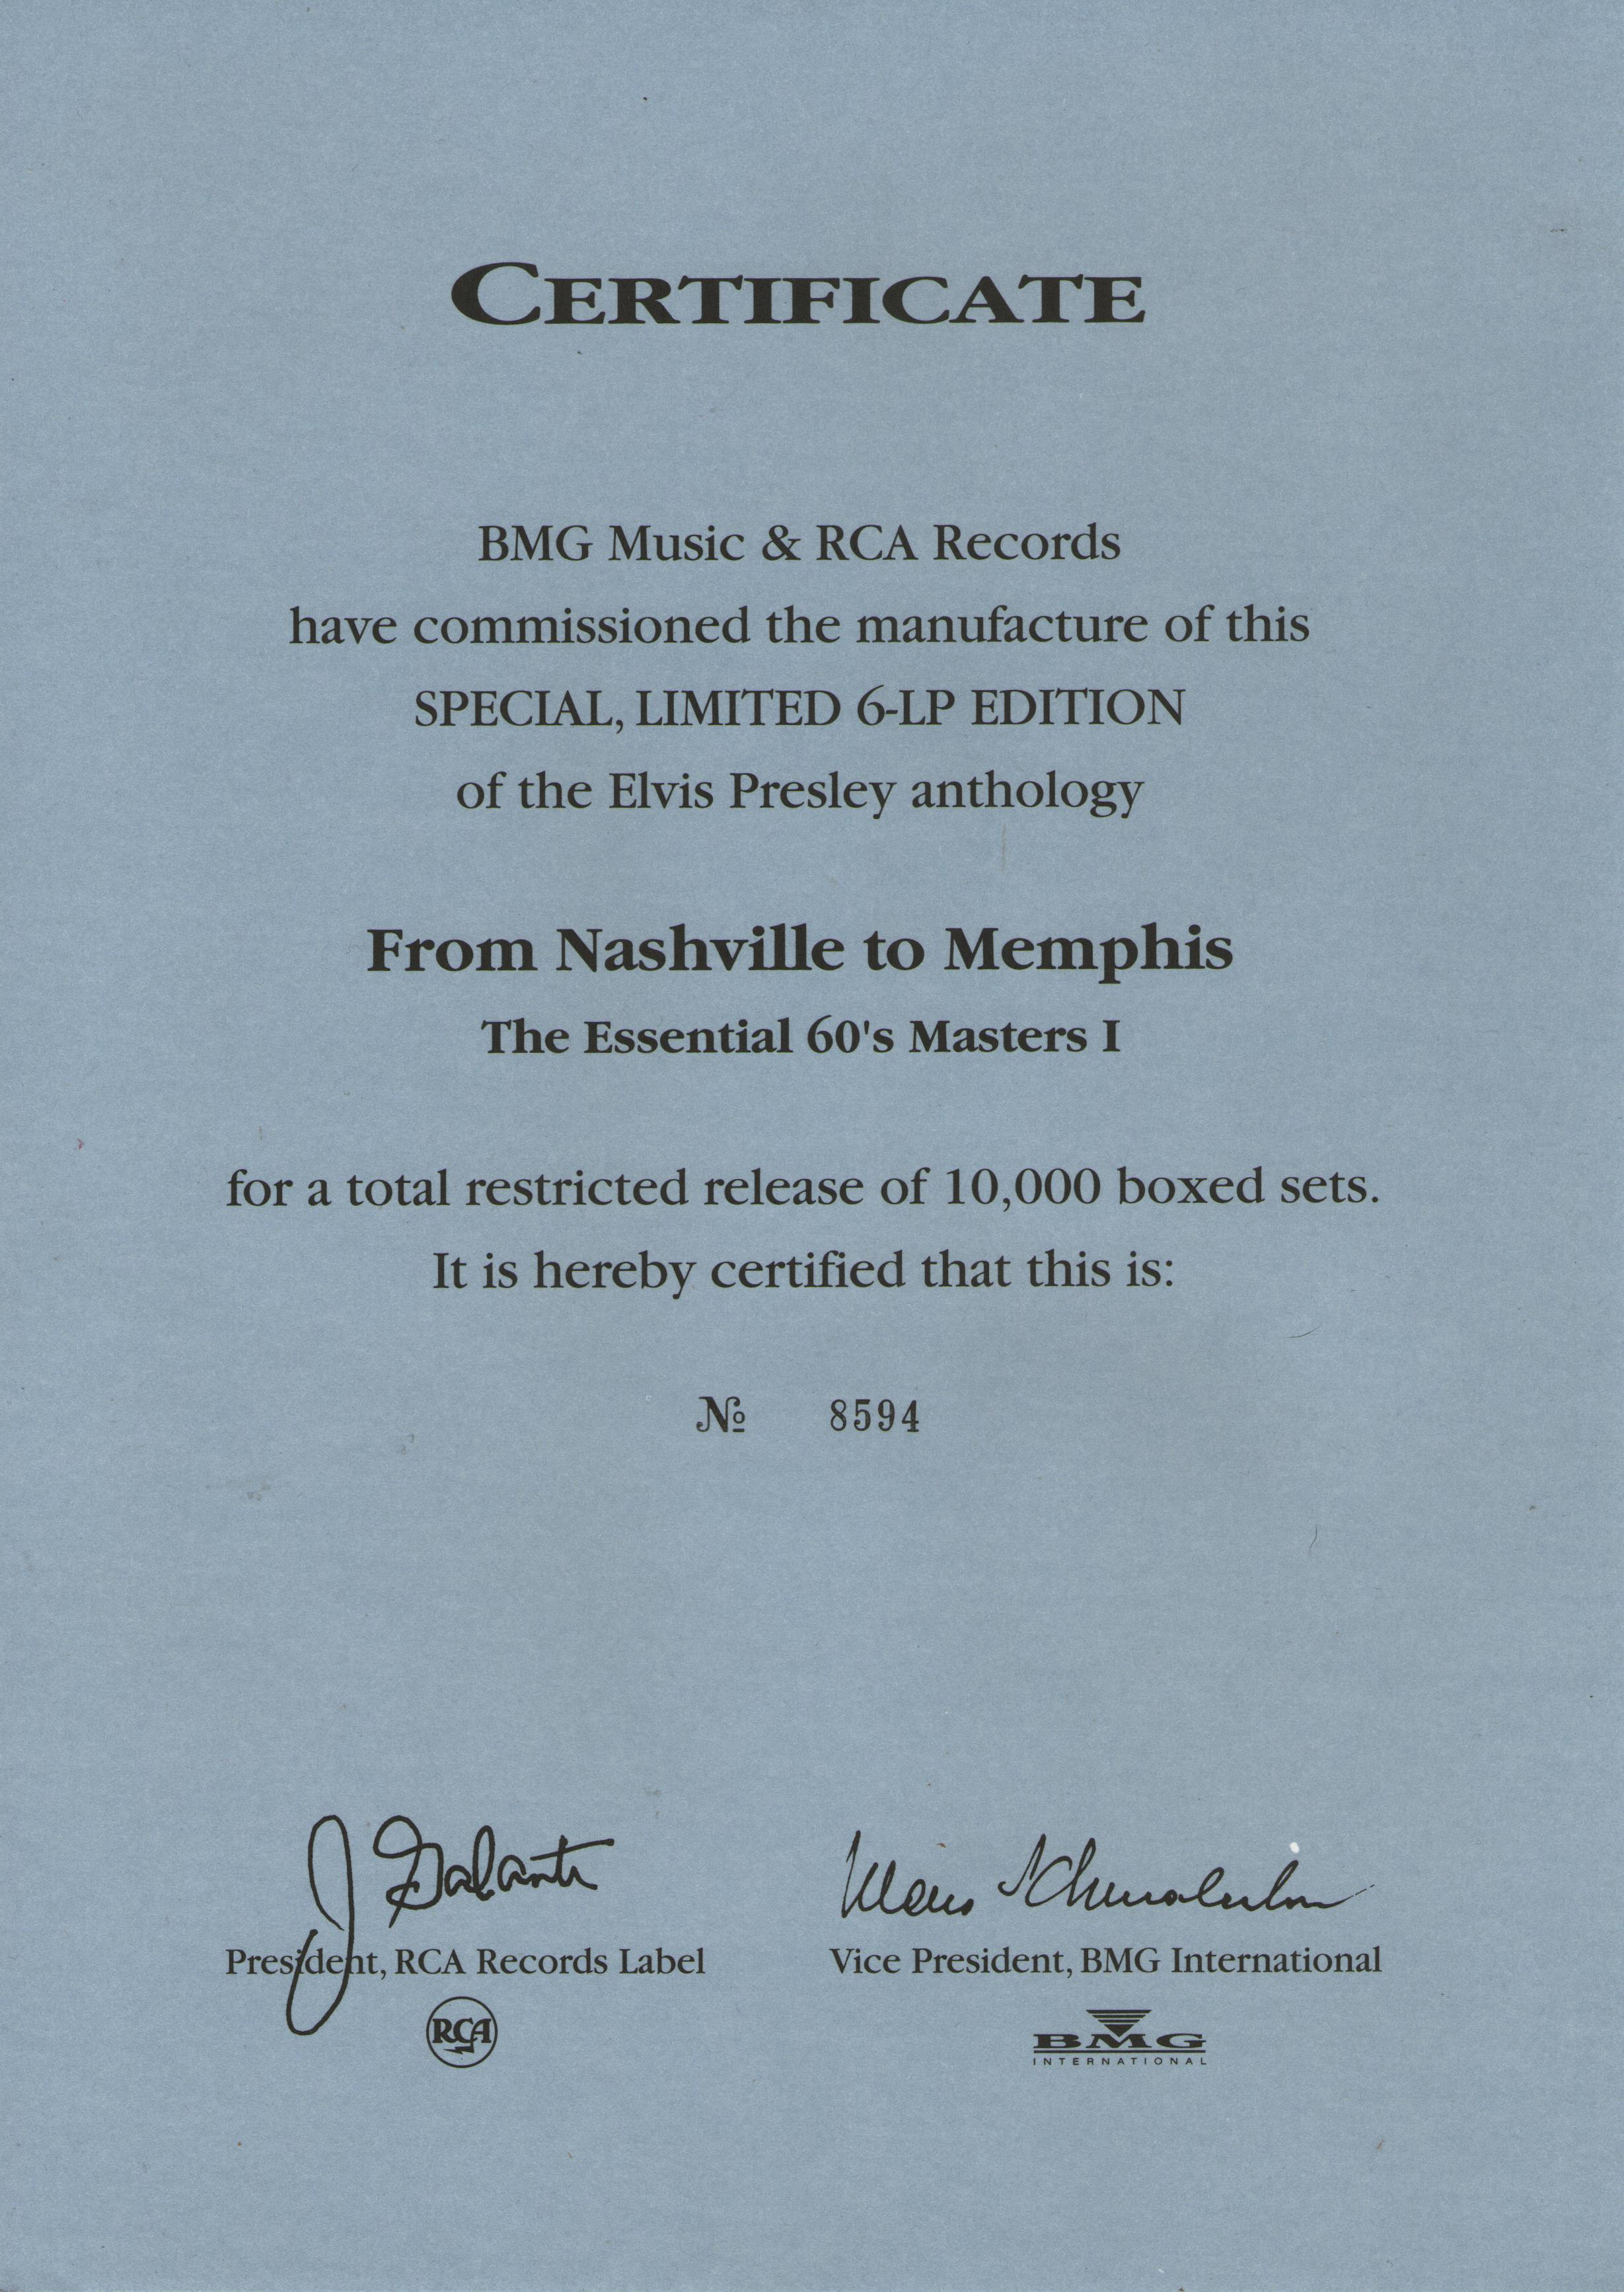 ELVIS - FROM NASHVILLE TO MEMPHIS - THE ESSENTIAL 60'S MASTERS Img5hkohf